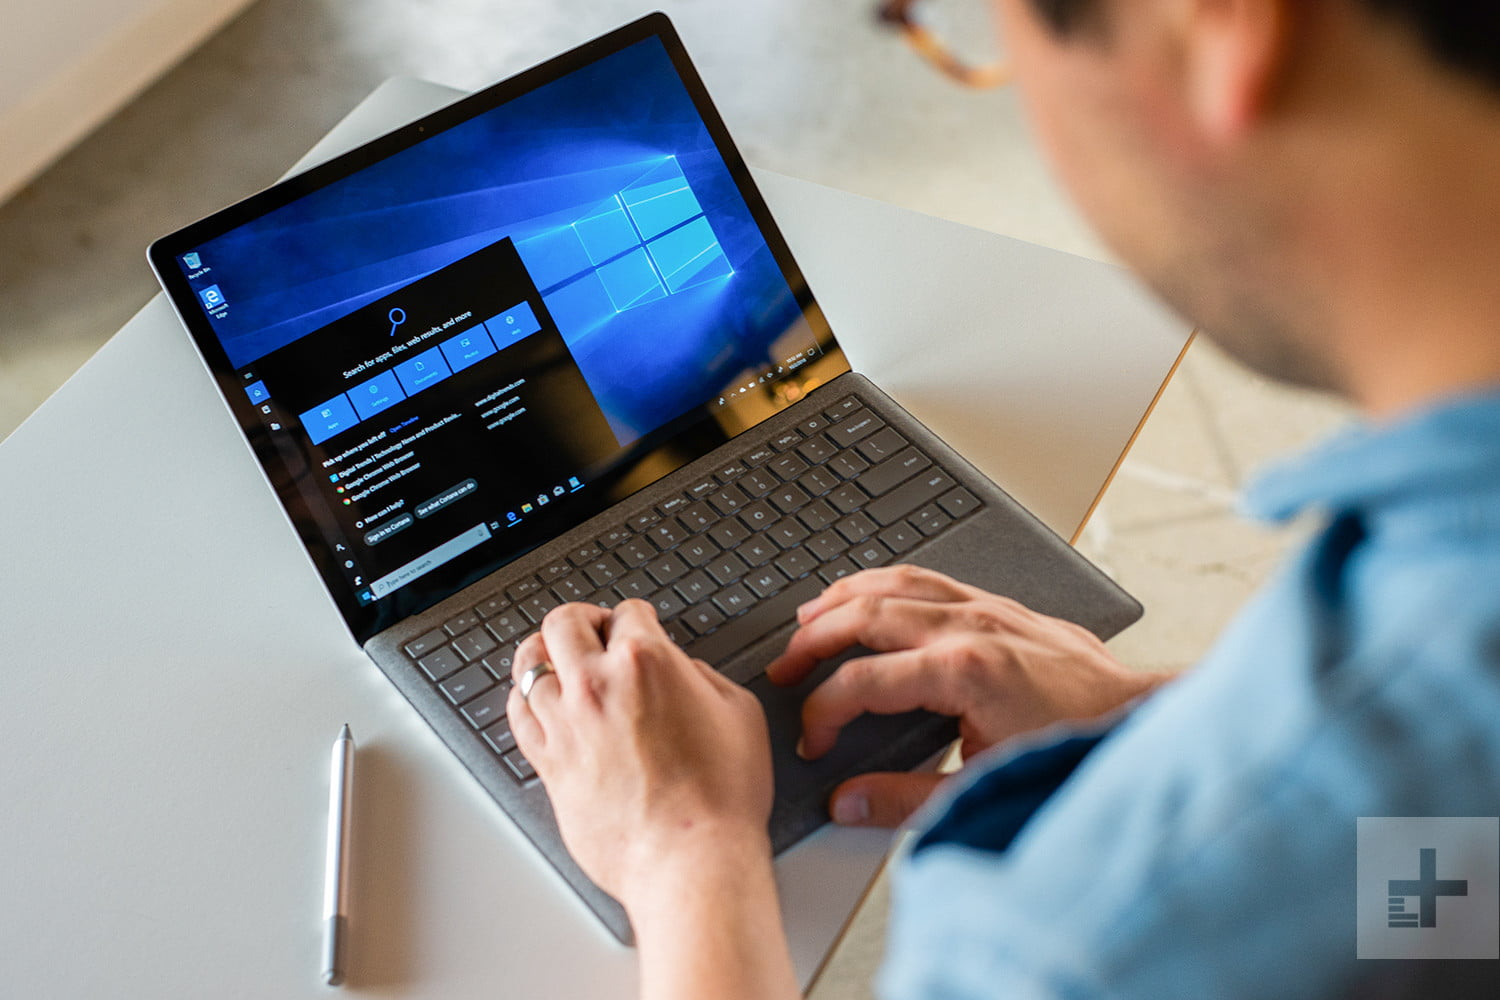 Windows 10 has two critical vulnerabilities; update now to avoid infection